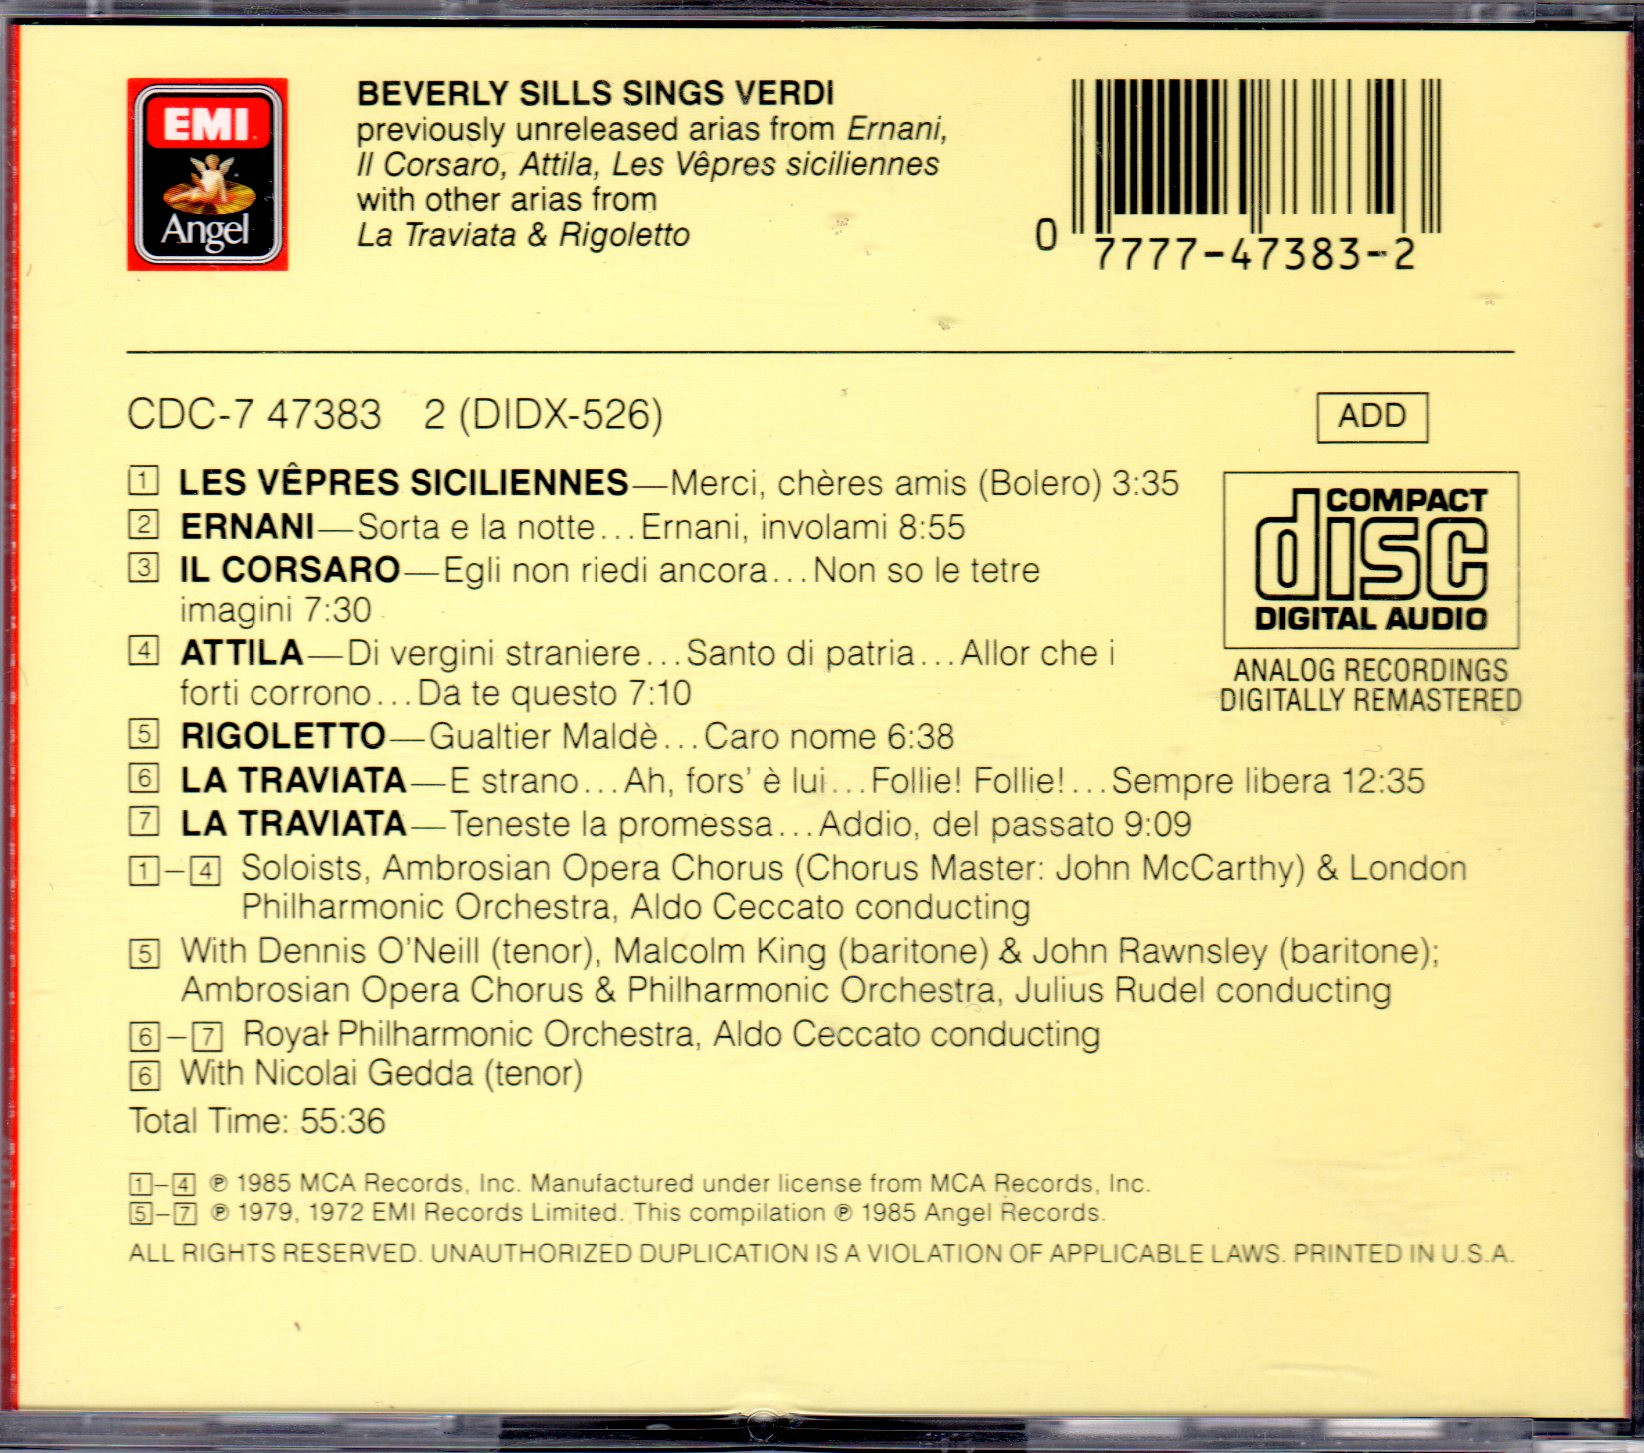 BEVERLY SILLS sings Verdi (EMI/Angel label) / ALDO CECCATO & JULIUS RUDEL,  conductors  PRIVATE COLLECTION  (ITunes digital download)